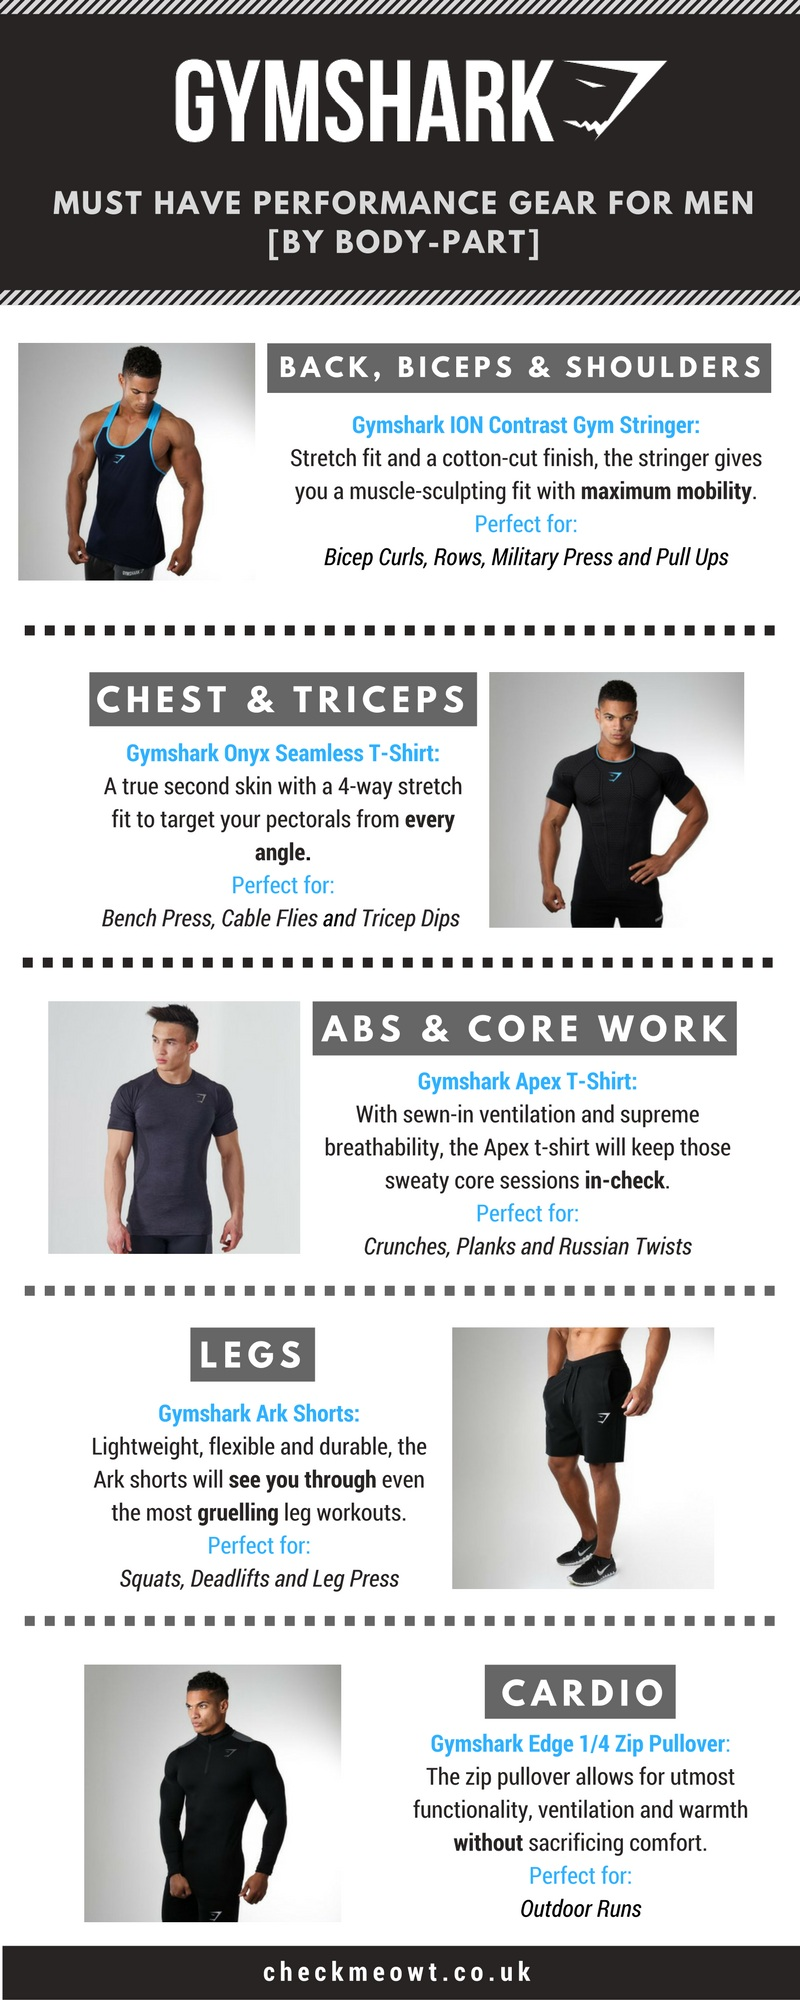 Gymshark-Infographic-Mens-Performance-Gear 1